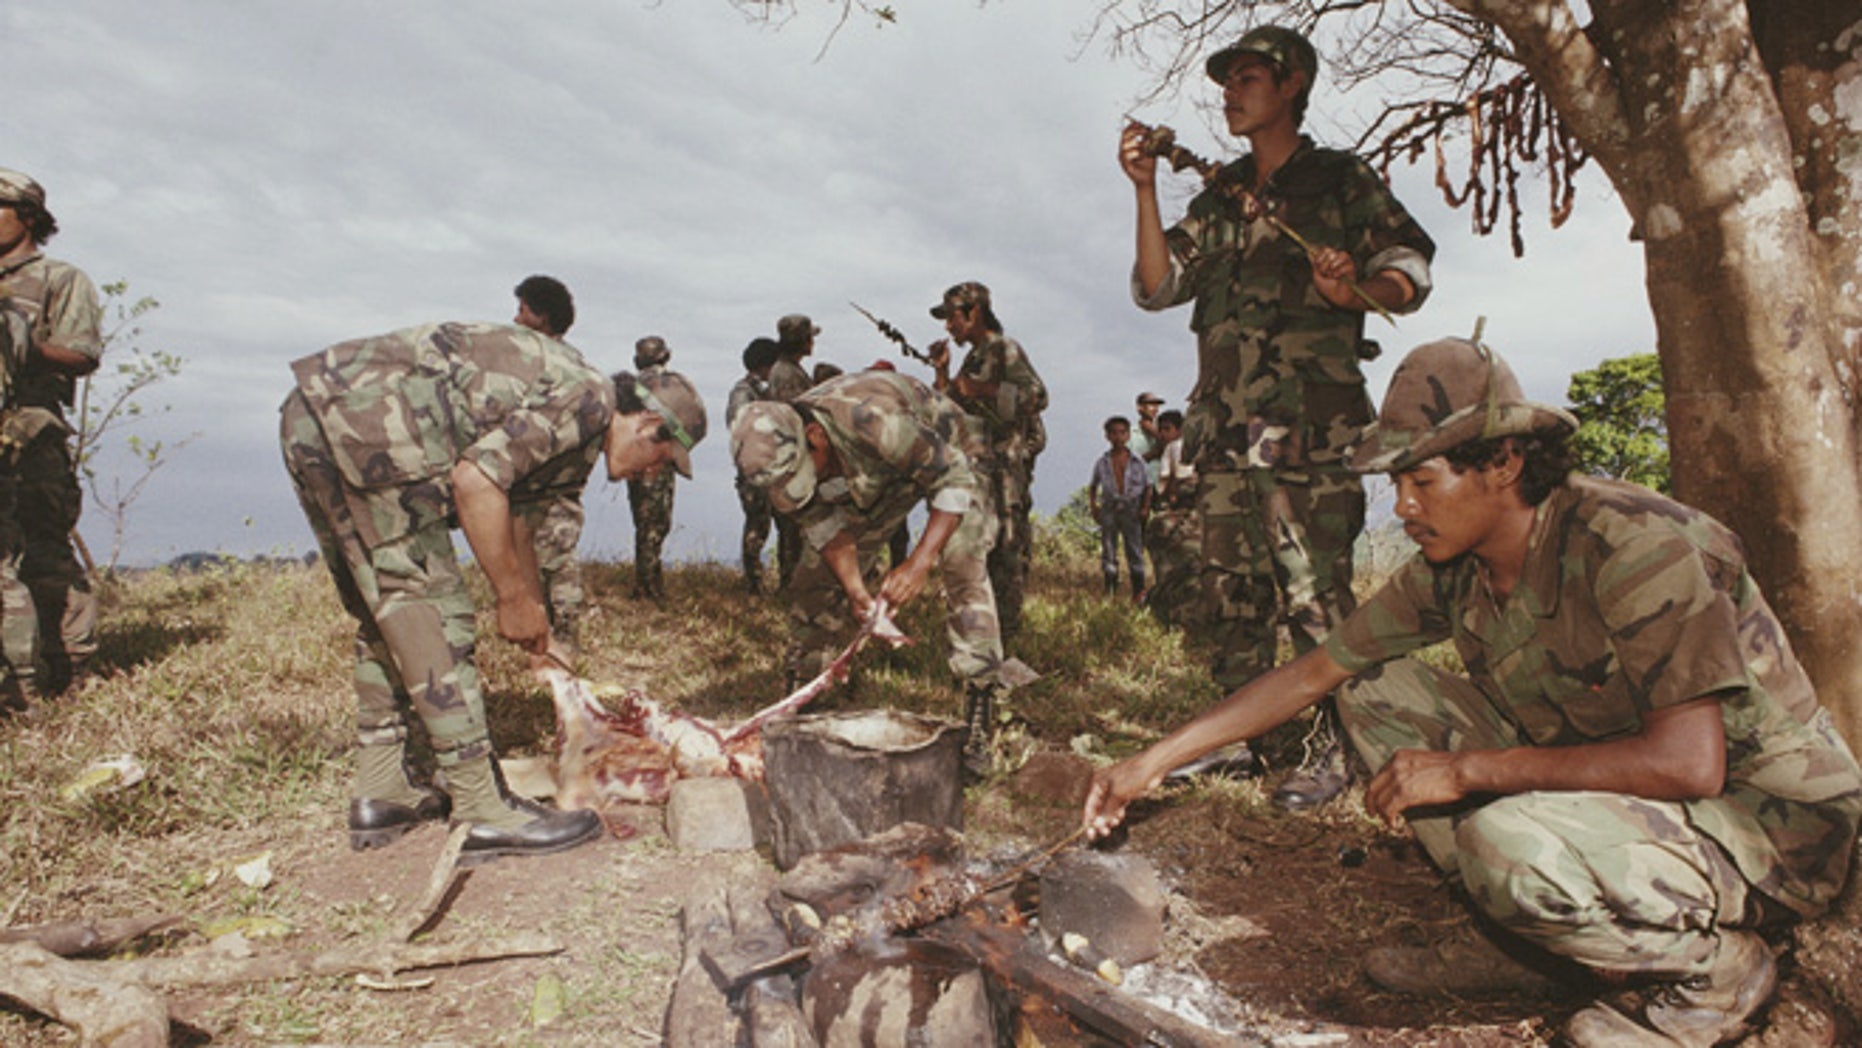 A group of contra guerillas cooking food in a disarmament zone, which they have just entered, Nicaragua, 1990. (Photo by Scott Wallace/Getty Images)